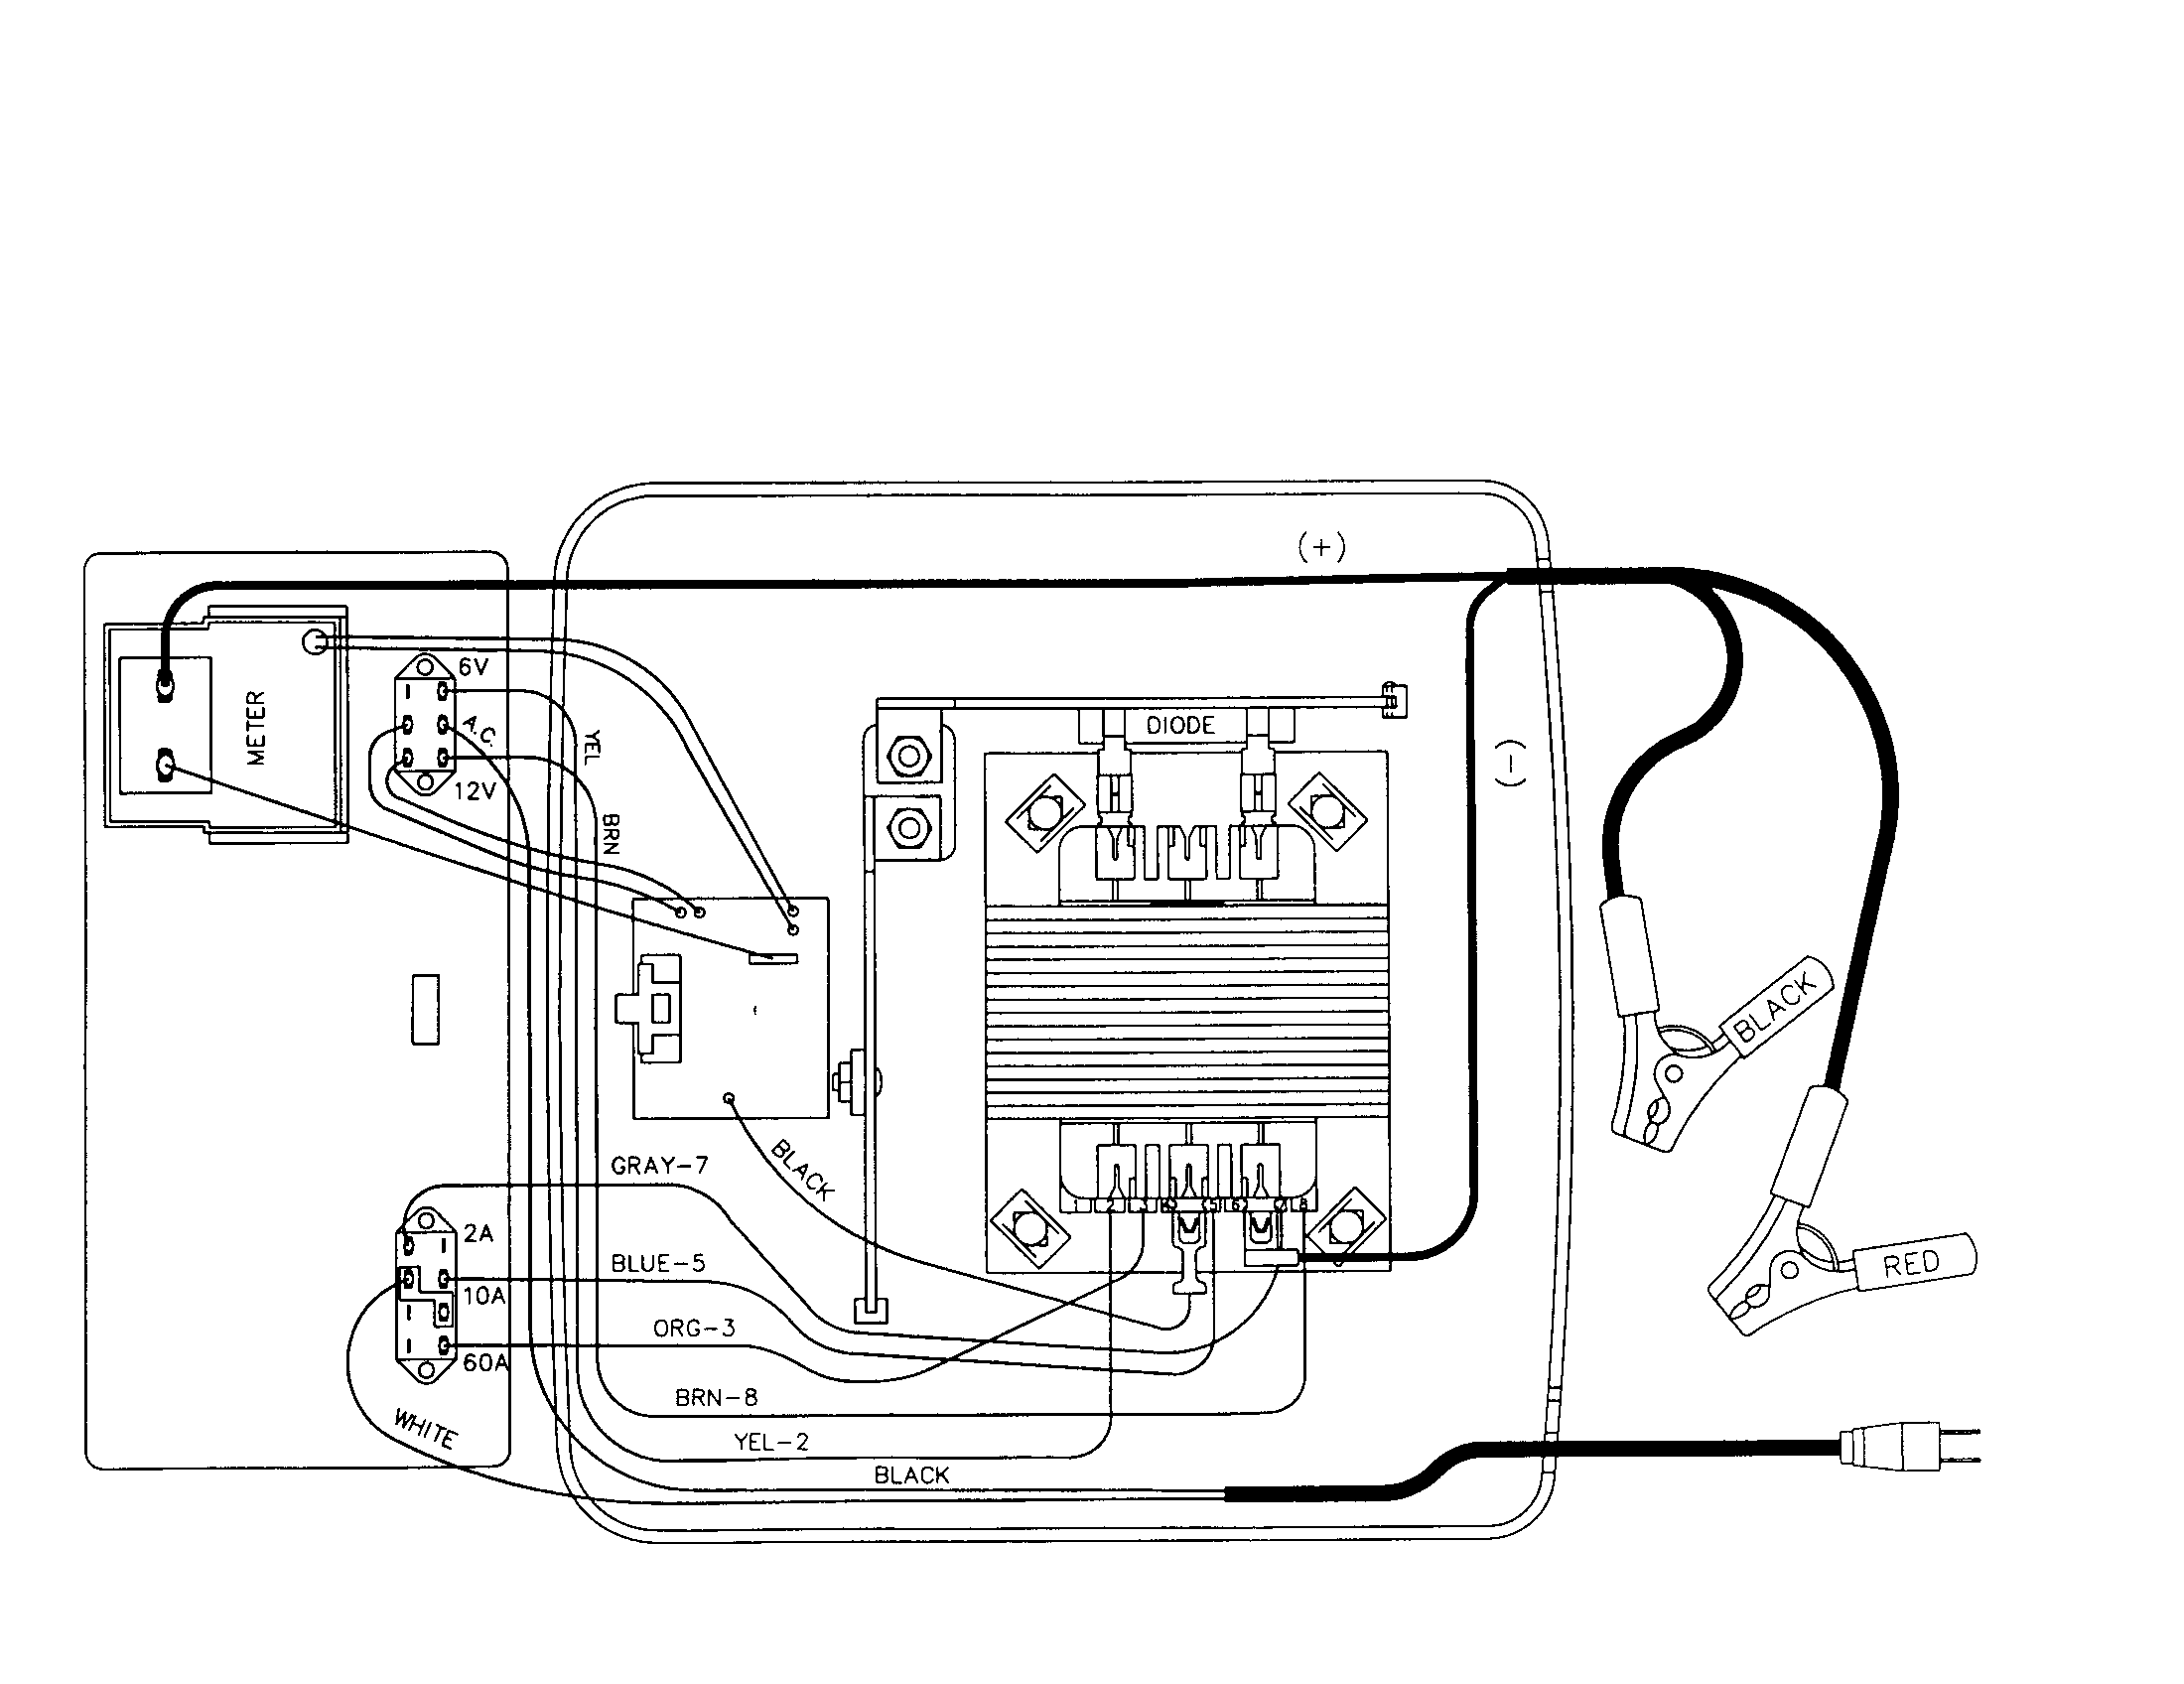 22110 Battery Charger Wiring Diagram